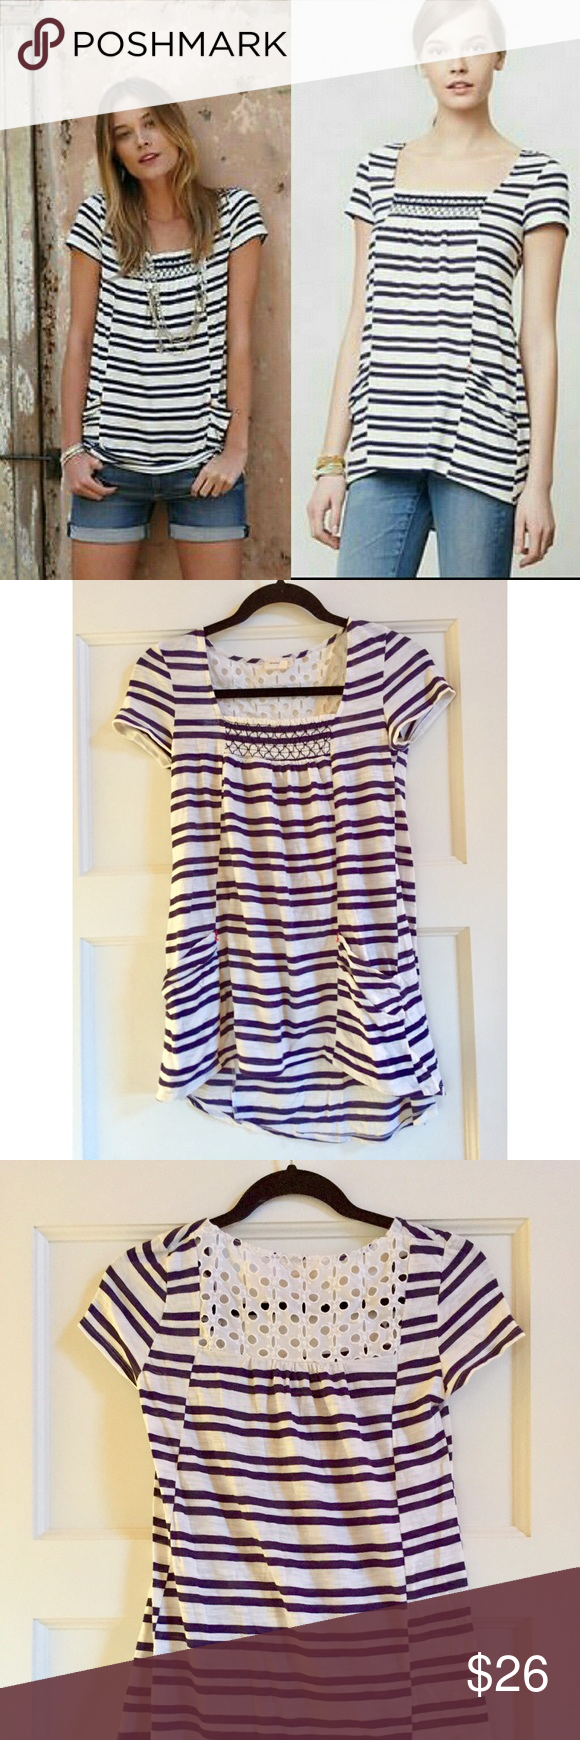 Navy and white Striped Marin Tunic Striped tunic with lace back detailing and pockets Anthropologie Tops Tunics